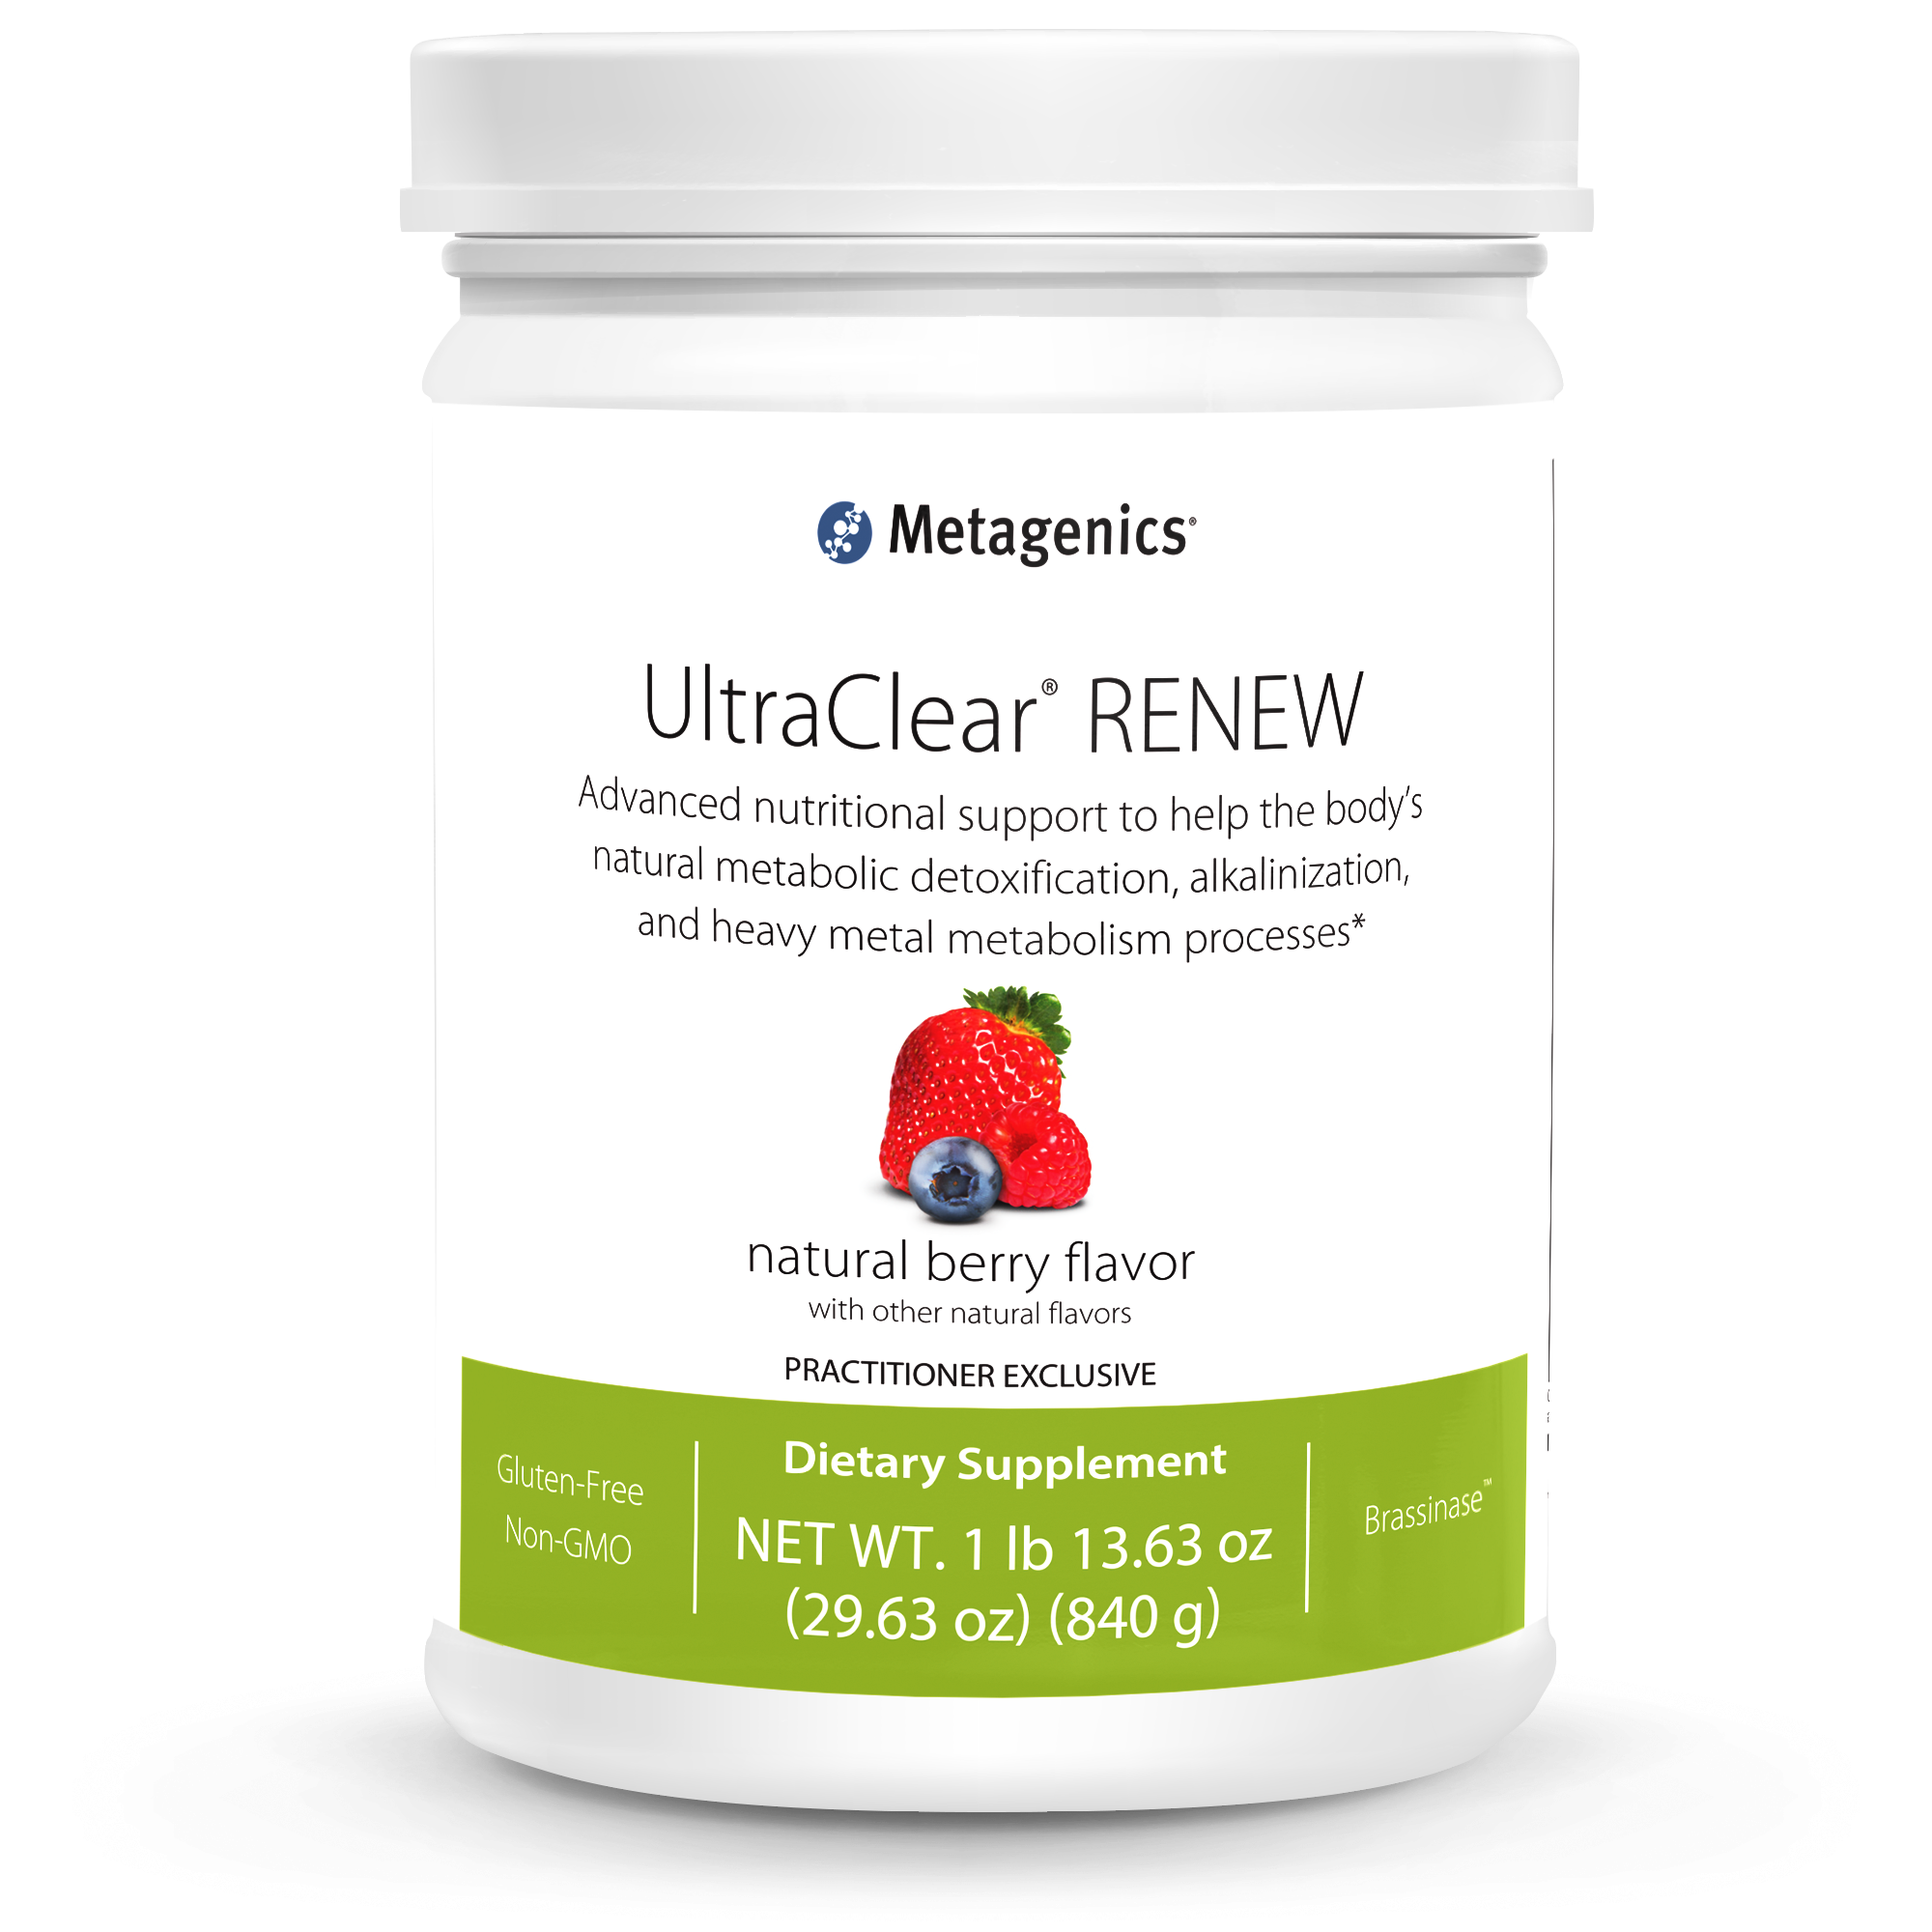 UltraClear® RENEW